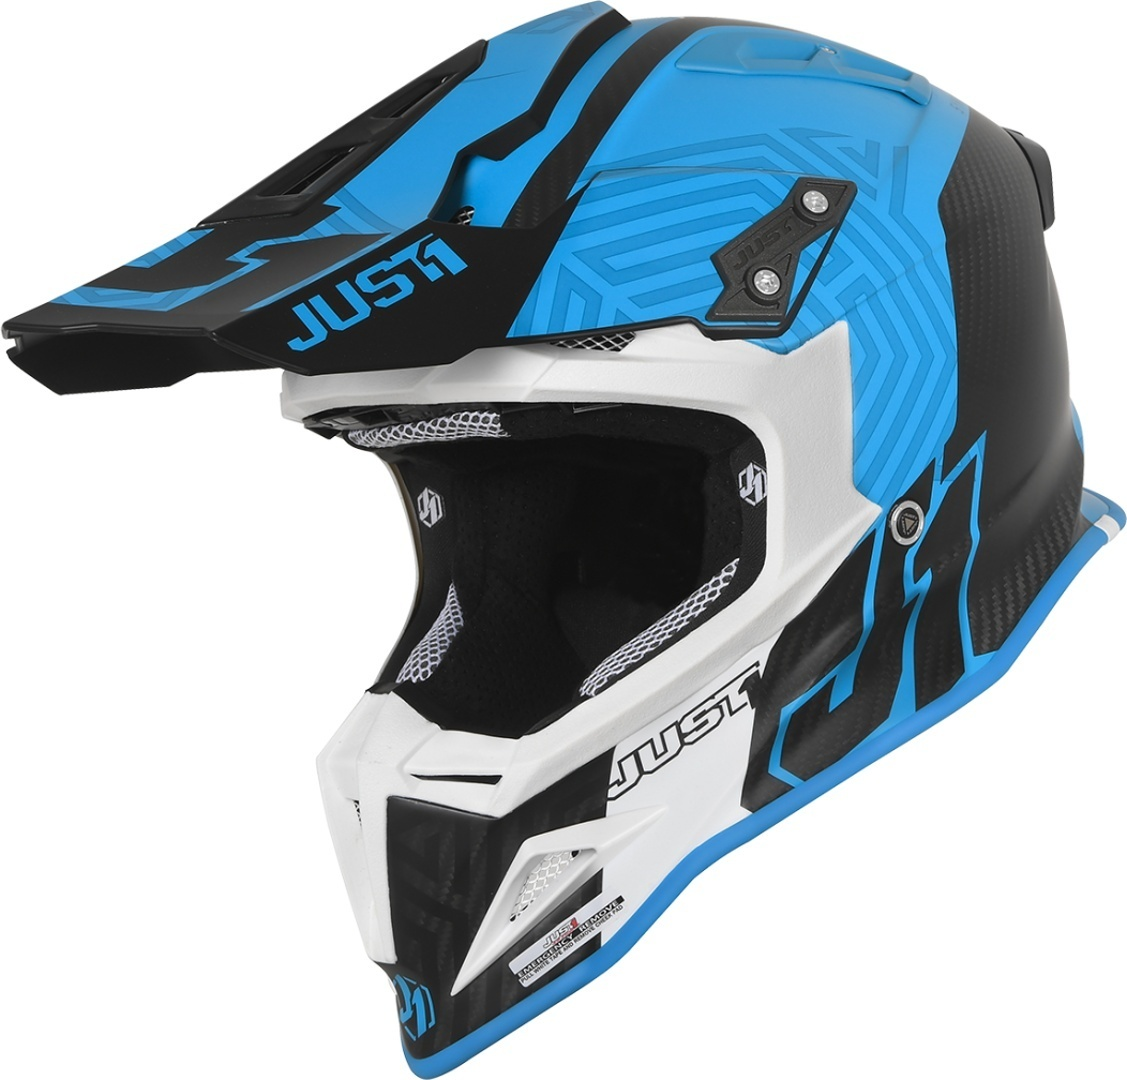 Just1 J12 Syncro Carbon Motocross Helm, weiss-türkis-blau, Größe XL, weiss-türkis-blau, Größe XL